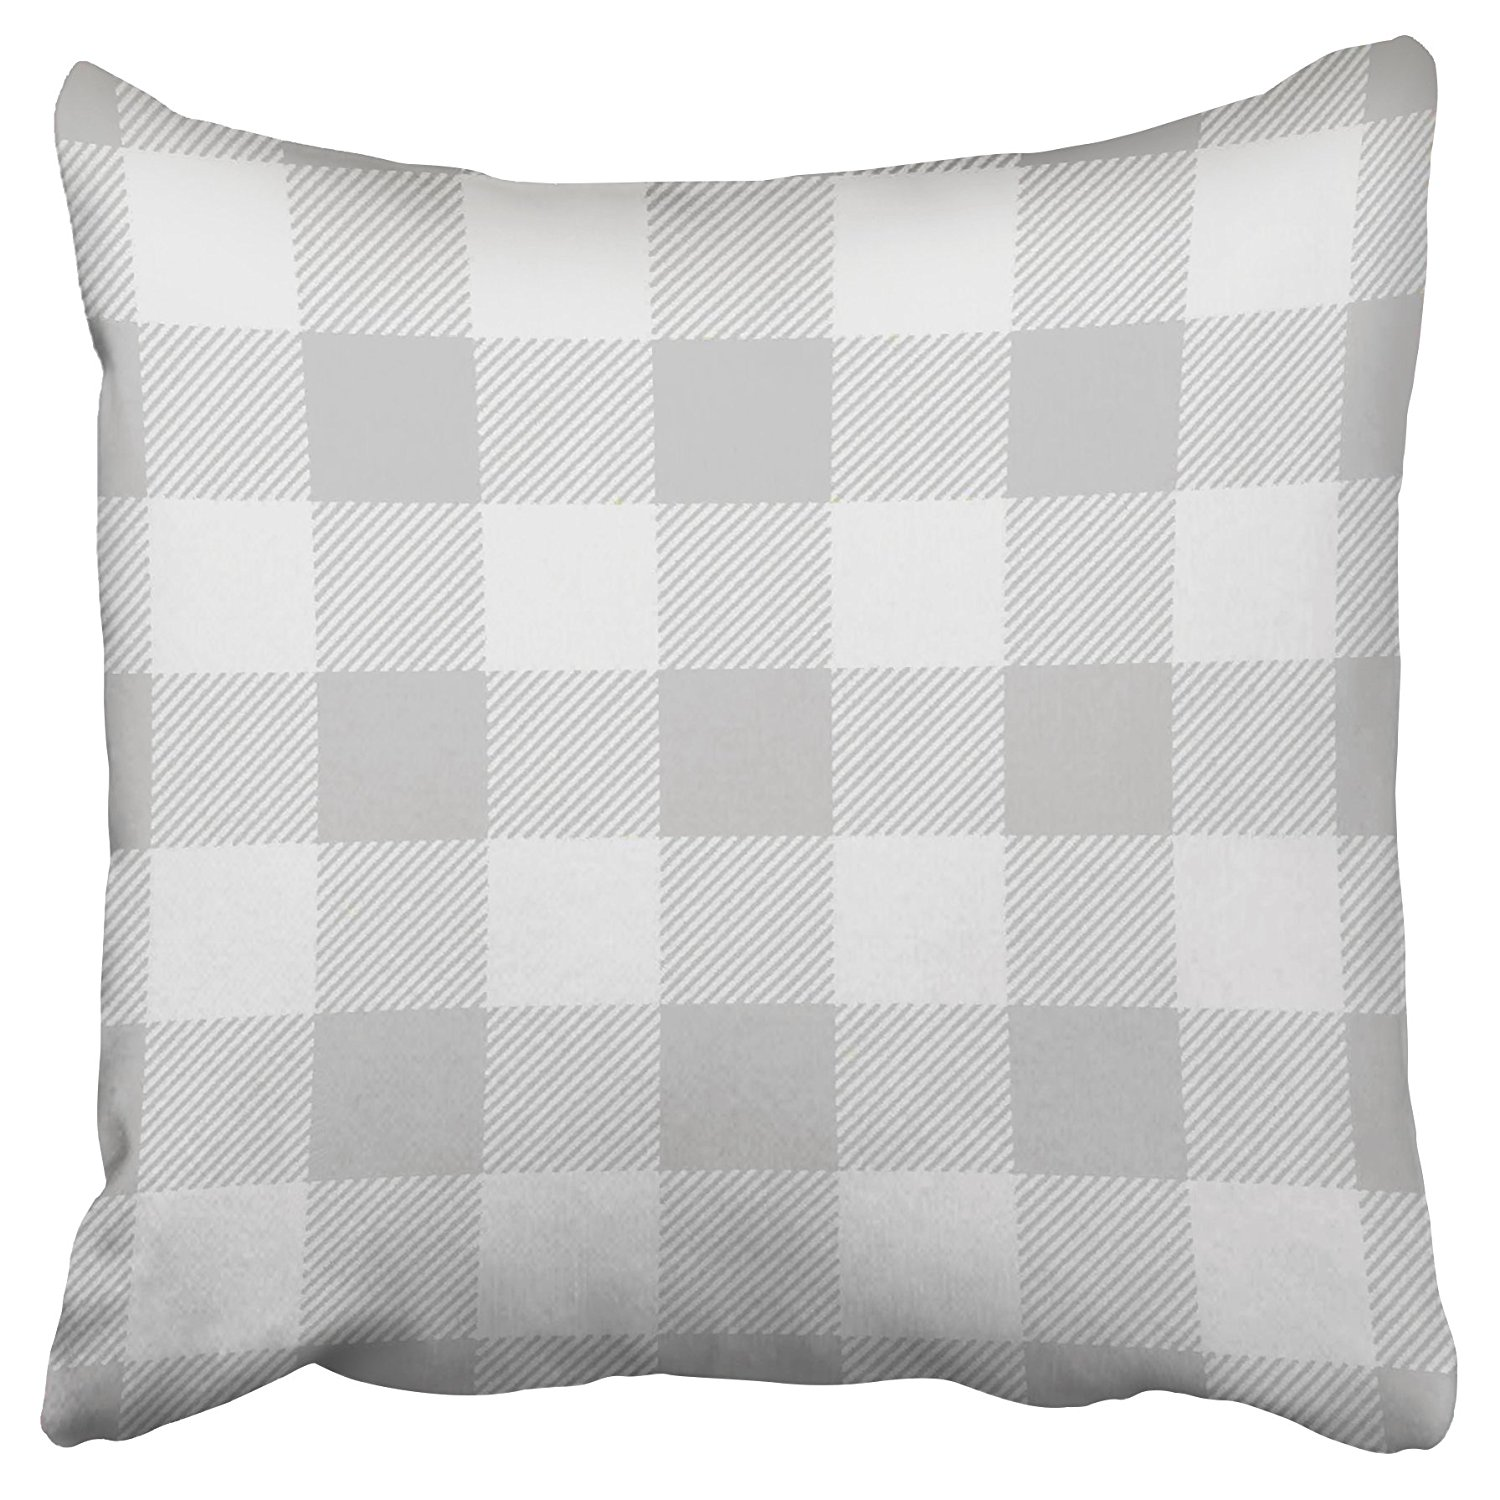 Spring Pillow Covers Under $10!